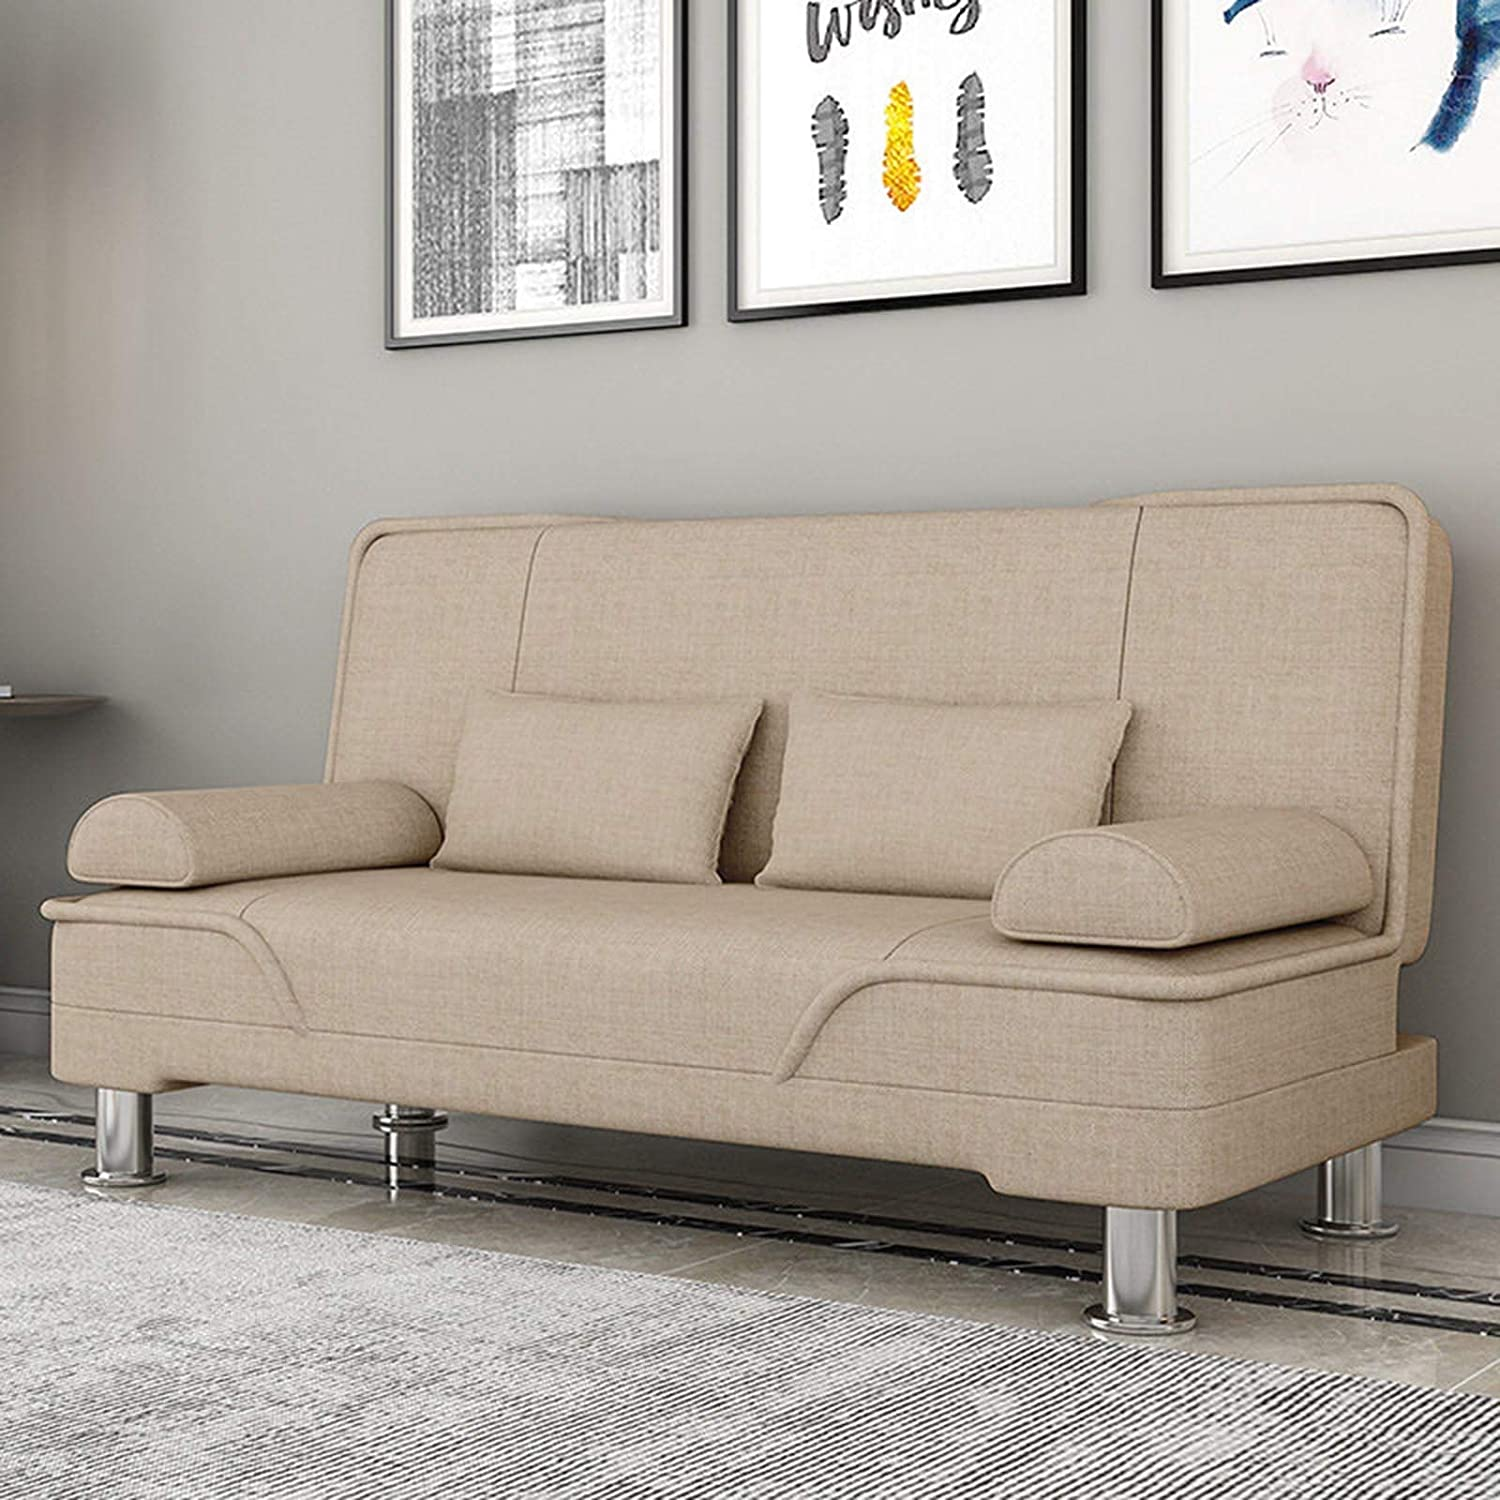 SND-A Memphis Mall Modern Futon Sofa Bed Sleeper with Detroit Mall 3 Adjustable Angl